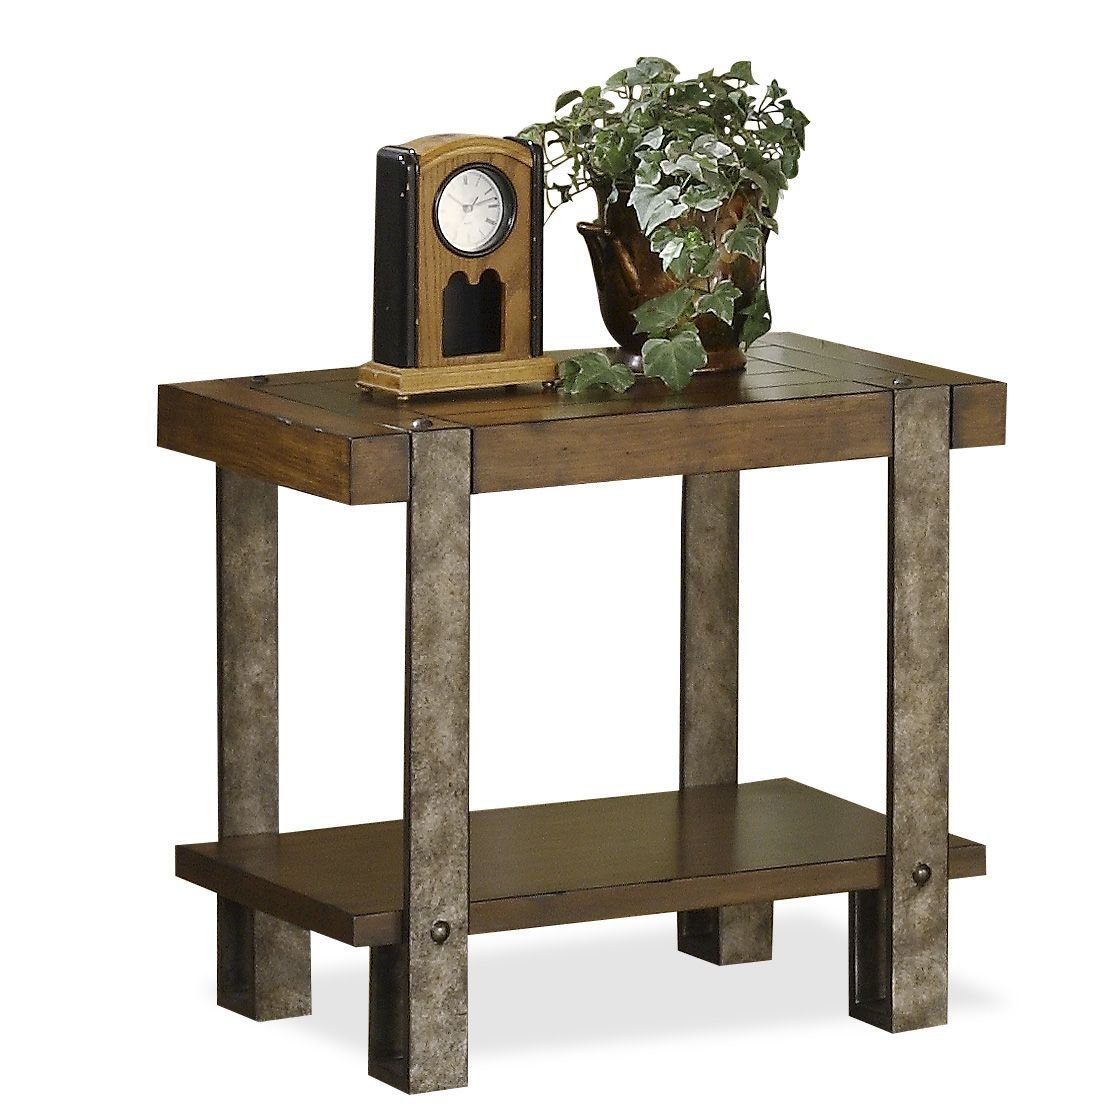 furniture small chairside tables for inspiring end table design ashley occasional set wedge accent storage with cherry drawers side shelves round ethan allen industrial style